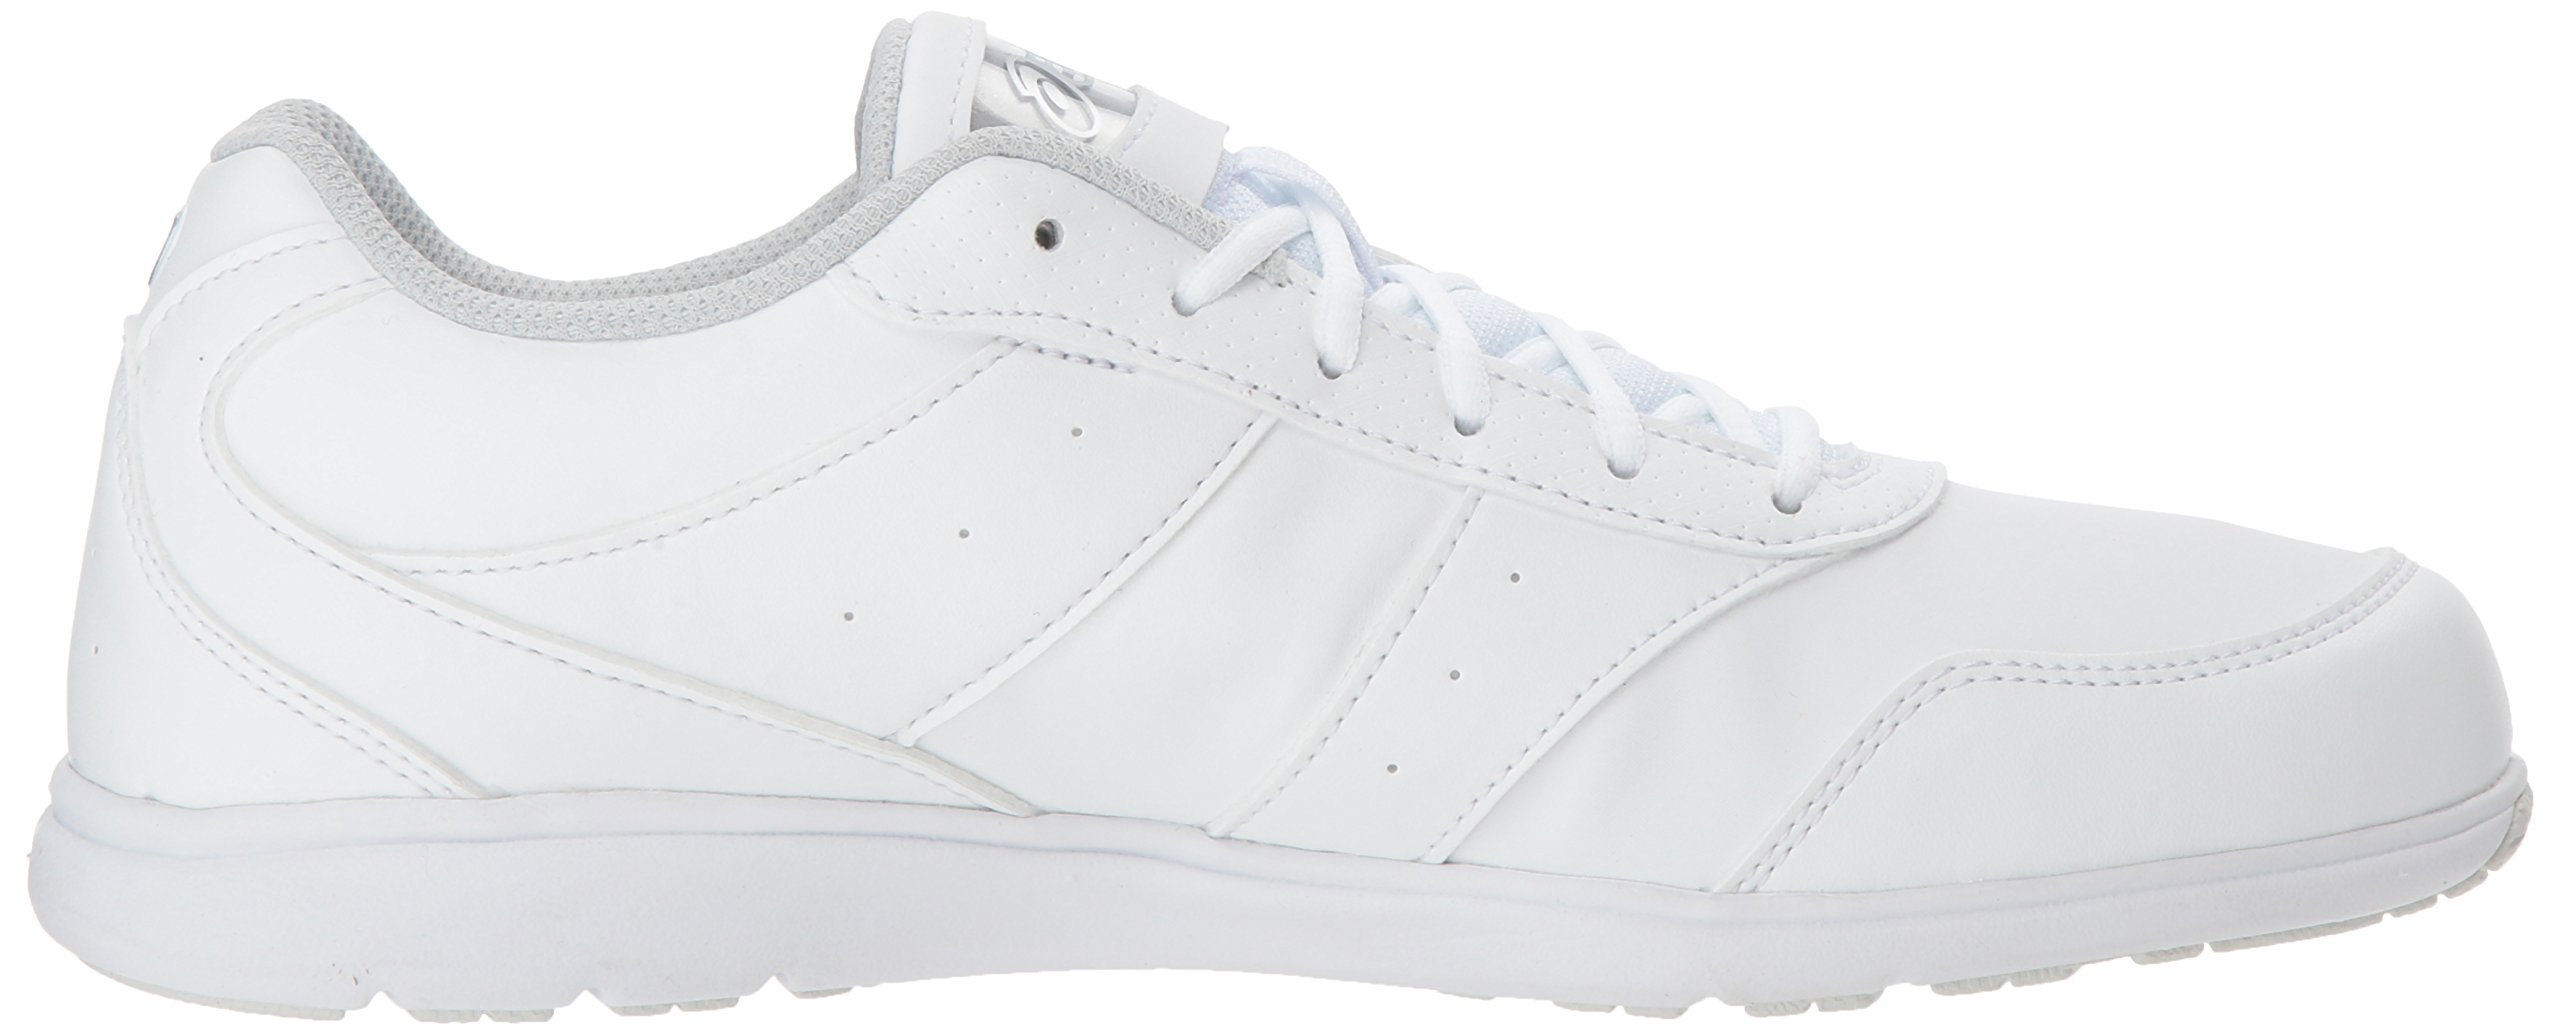 ASICS Cheer 8 Women's Cheer Shoes, White, Size 7